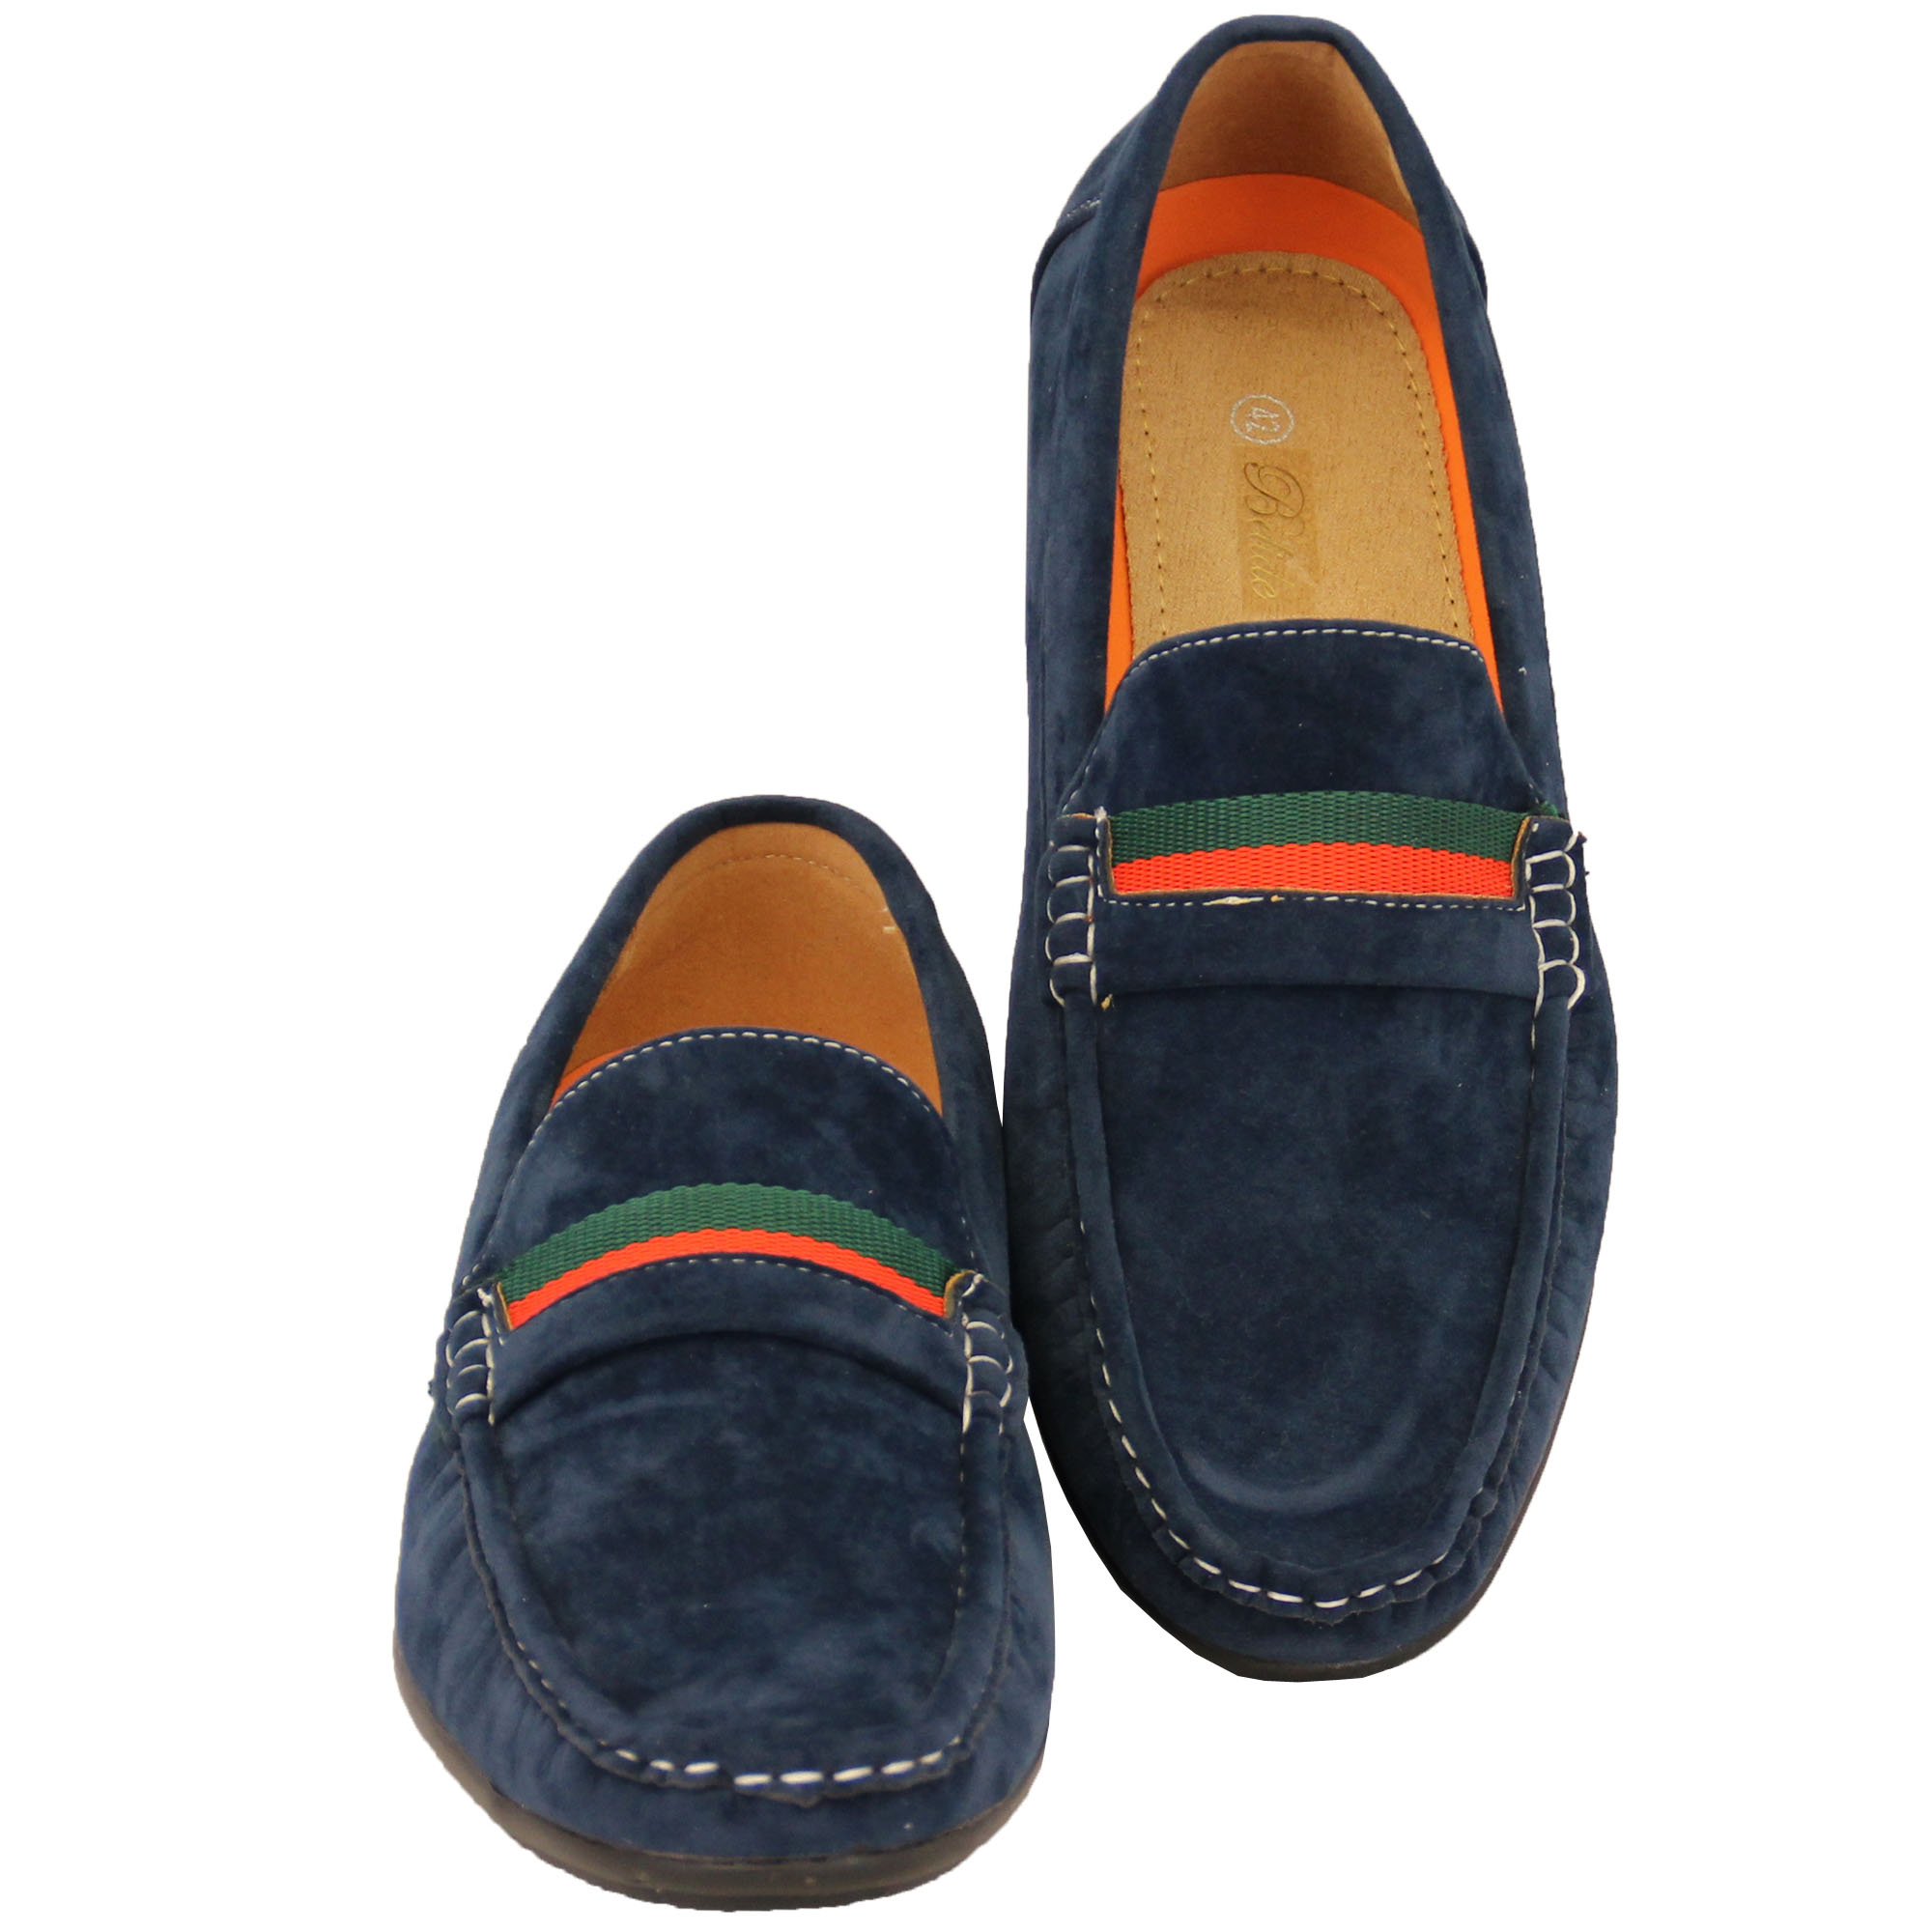 Mens-Moccasins-Suede-Look-Driving-Loafers-Slip-On-Boat-Shoes-Ribbon-Tassle-New thumbnail 15